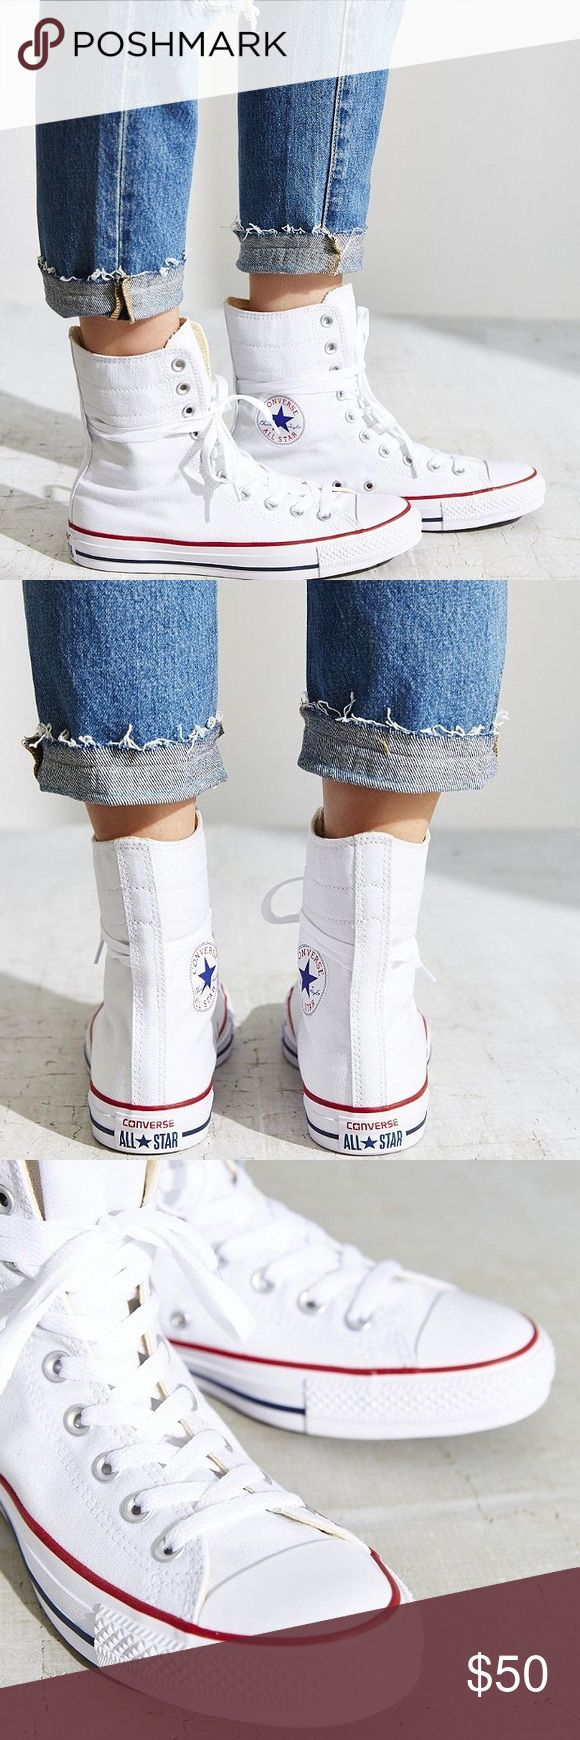 White Chuck Taylor All Star High Rise Sneakers Versatile, classic Converse All Star sneakers deserve a spot in every closet, pairing perfectly with jeans or giving a suit some edge. Signature cap toe; lace up. Worn Once.                            ⚡️Fast Shipper⚡️ 💰20% Off 2+ Items💰 🍀Make An Offer🍀.                                          💥PLUS: 📦FREE SHIPPING📦 On Fridays Only on $50+ Item(s) [Bundle] or on any $100+ Orders any day. 🛍 Converse Shoes Sneakers